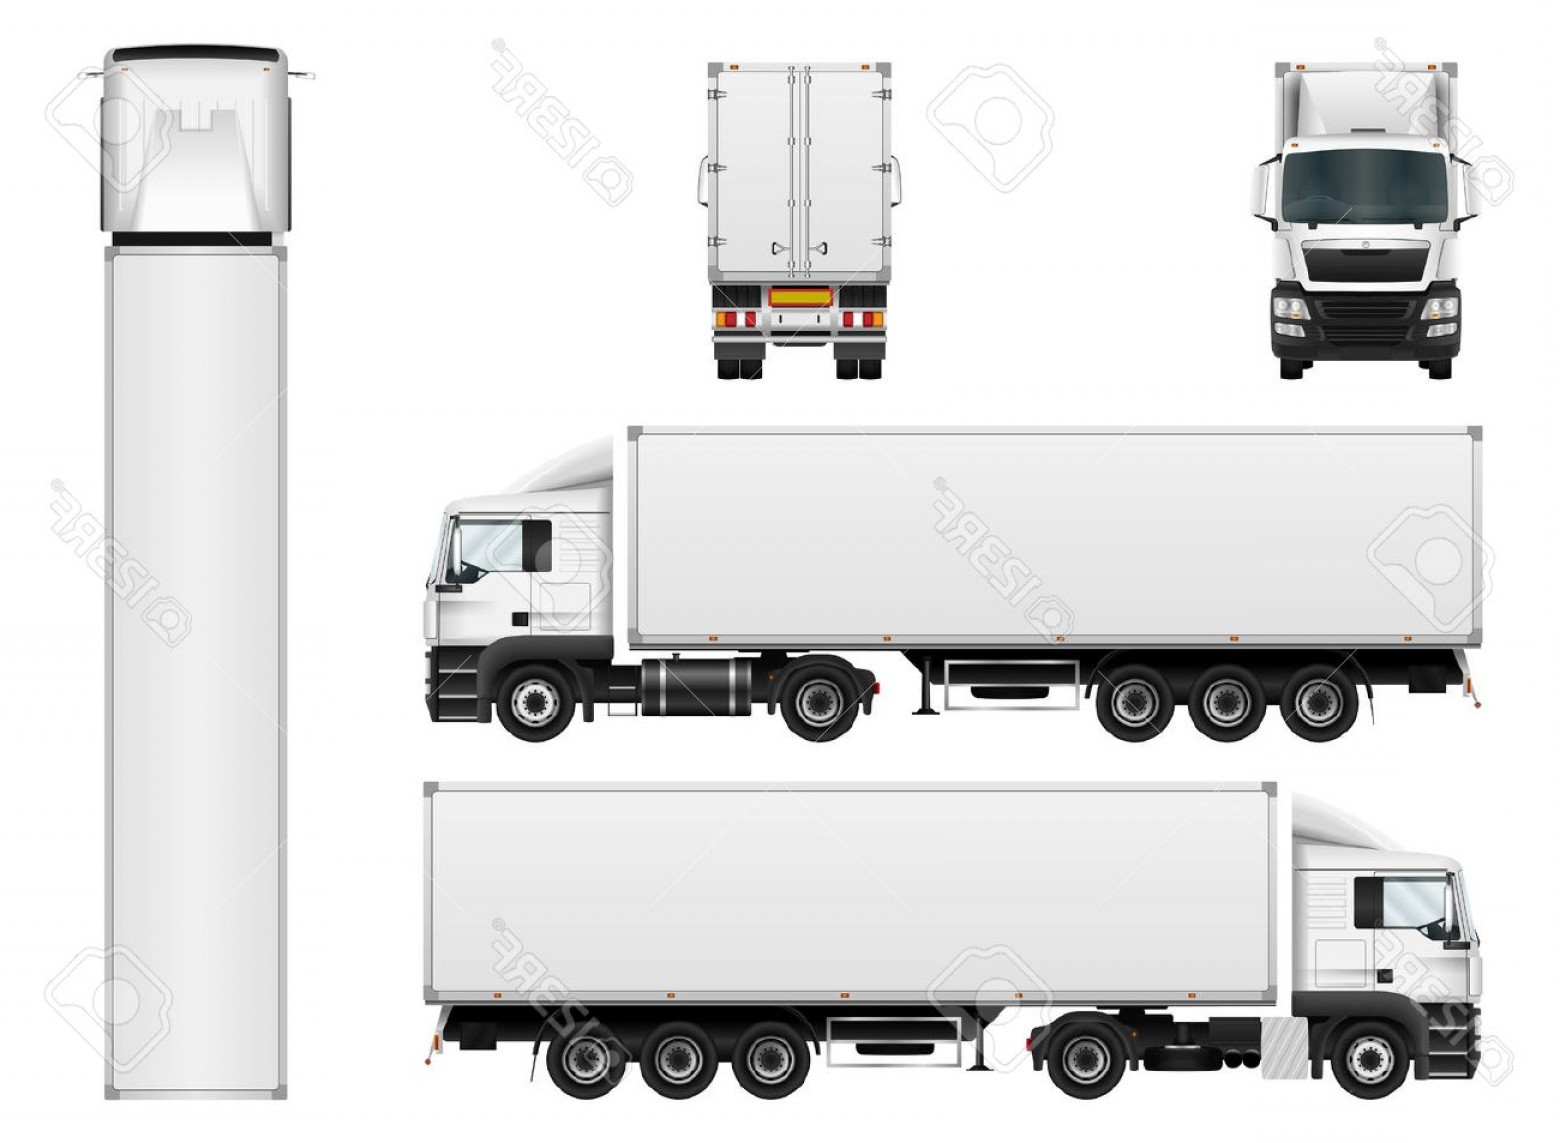 Cargo Trailer Vector: Photostock Vector Vector Truck Trailer Template Isolated On White Background Cargo Delivering Vehicle All Elements In